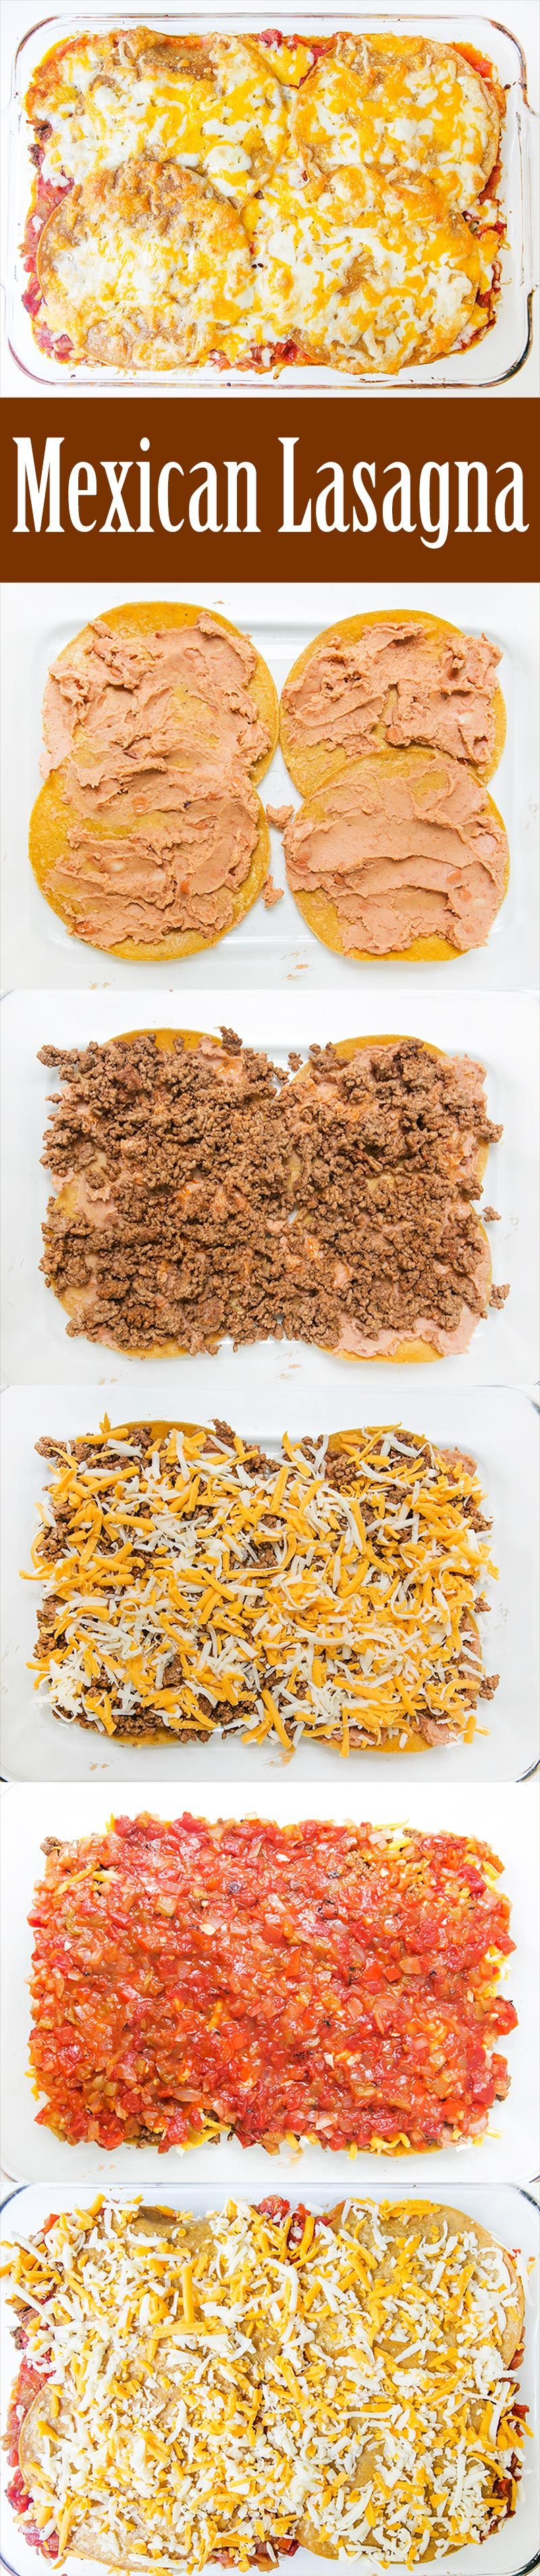 Mexican Lasagna Also Known As Mexican Casserole Or Stacked Enchilada This Casserole Is Layered With Corn Tortillas Ground Beef Gre Mexican Lasagna Recipes Mexican Lasagna Mexican Food Recipes